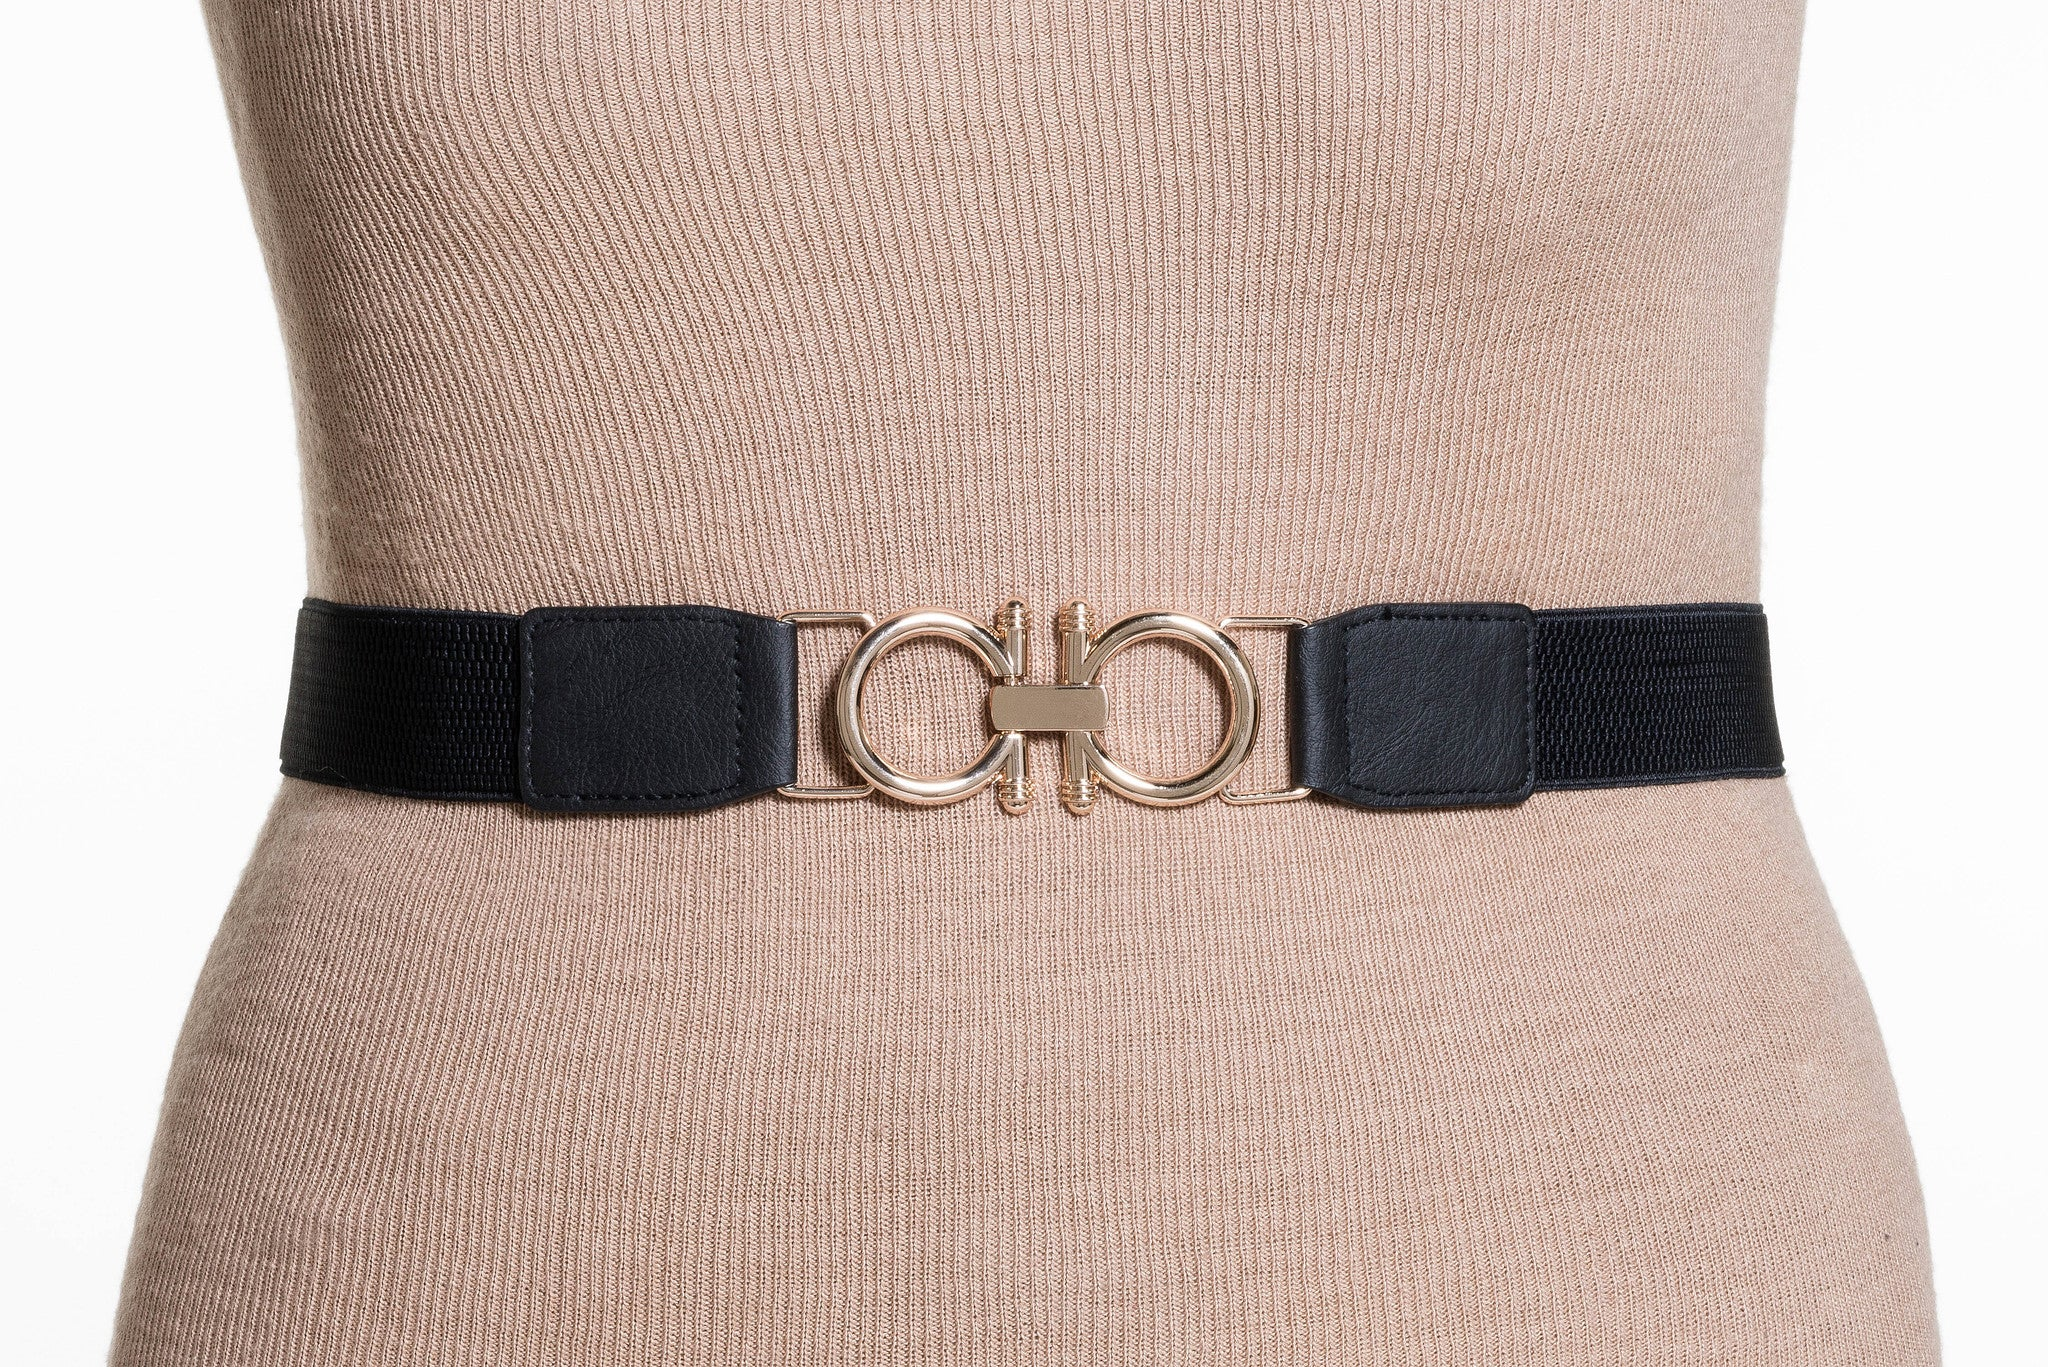 Final Sale Plus Size Elastic Band / Gold Two Ring Lock Belt in Black